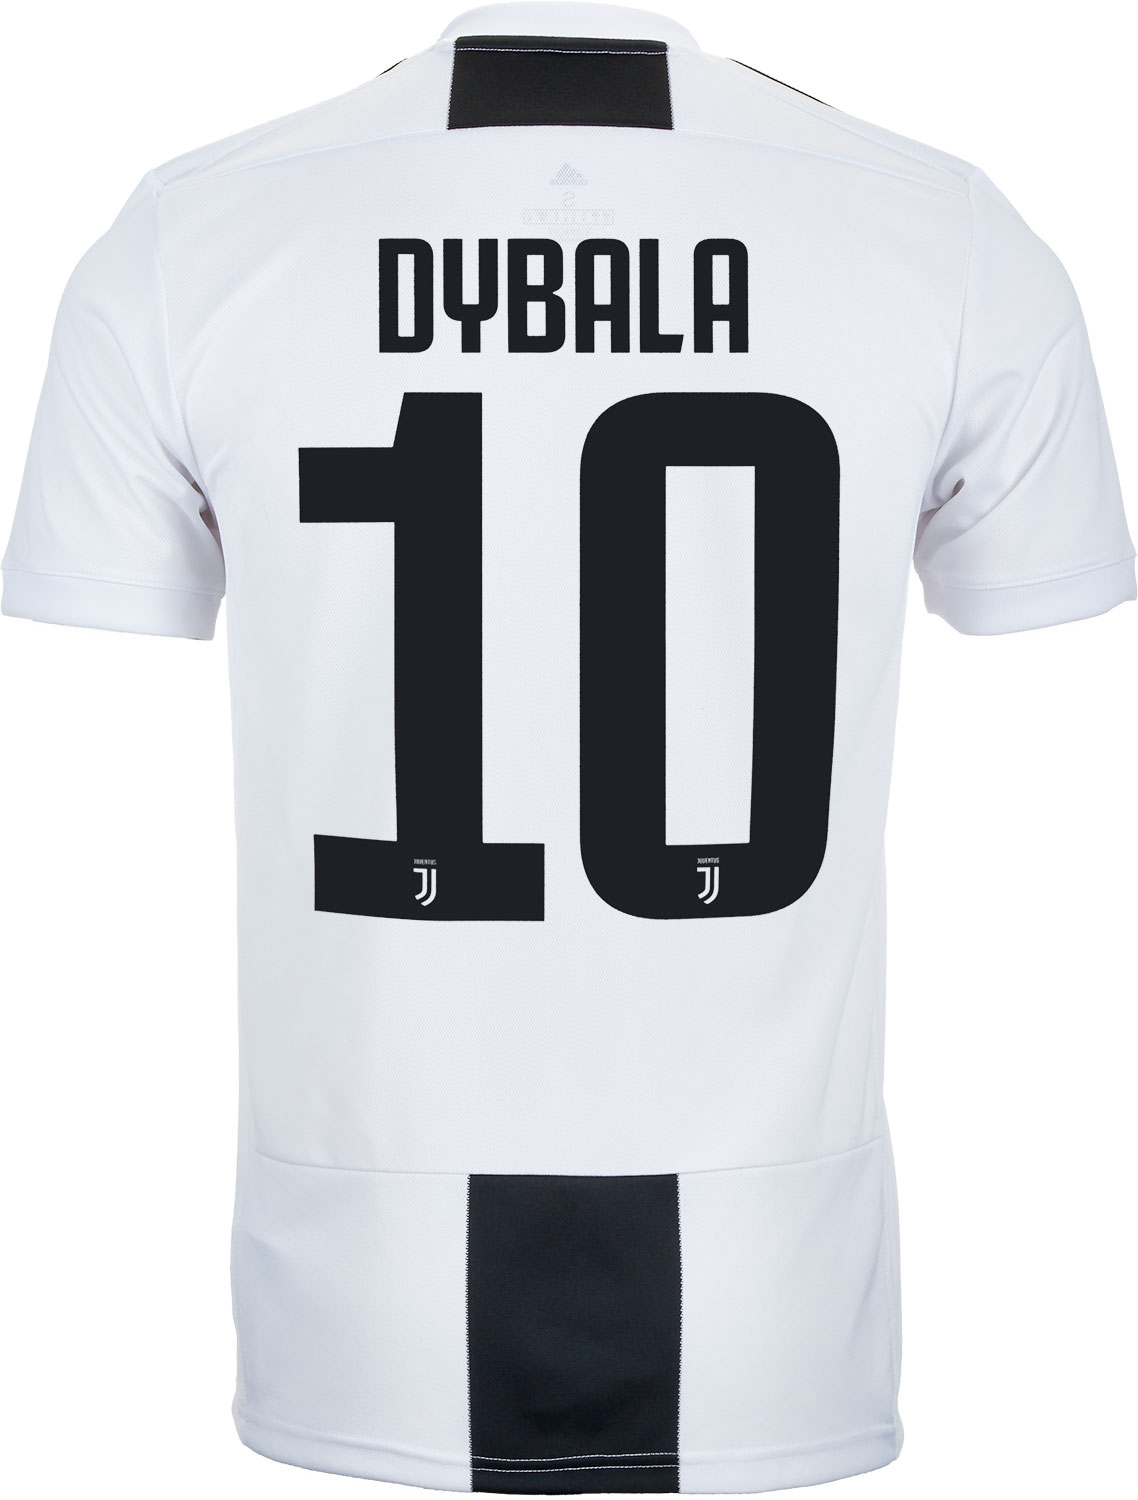 19af3fccc79 adidas Paulo Dybala Juventus Home Jersey - Youth 2018-19 - SoccerPro